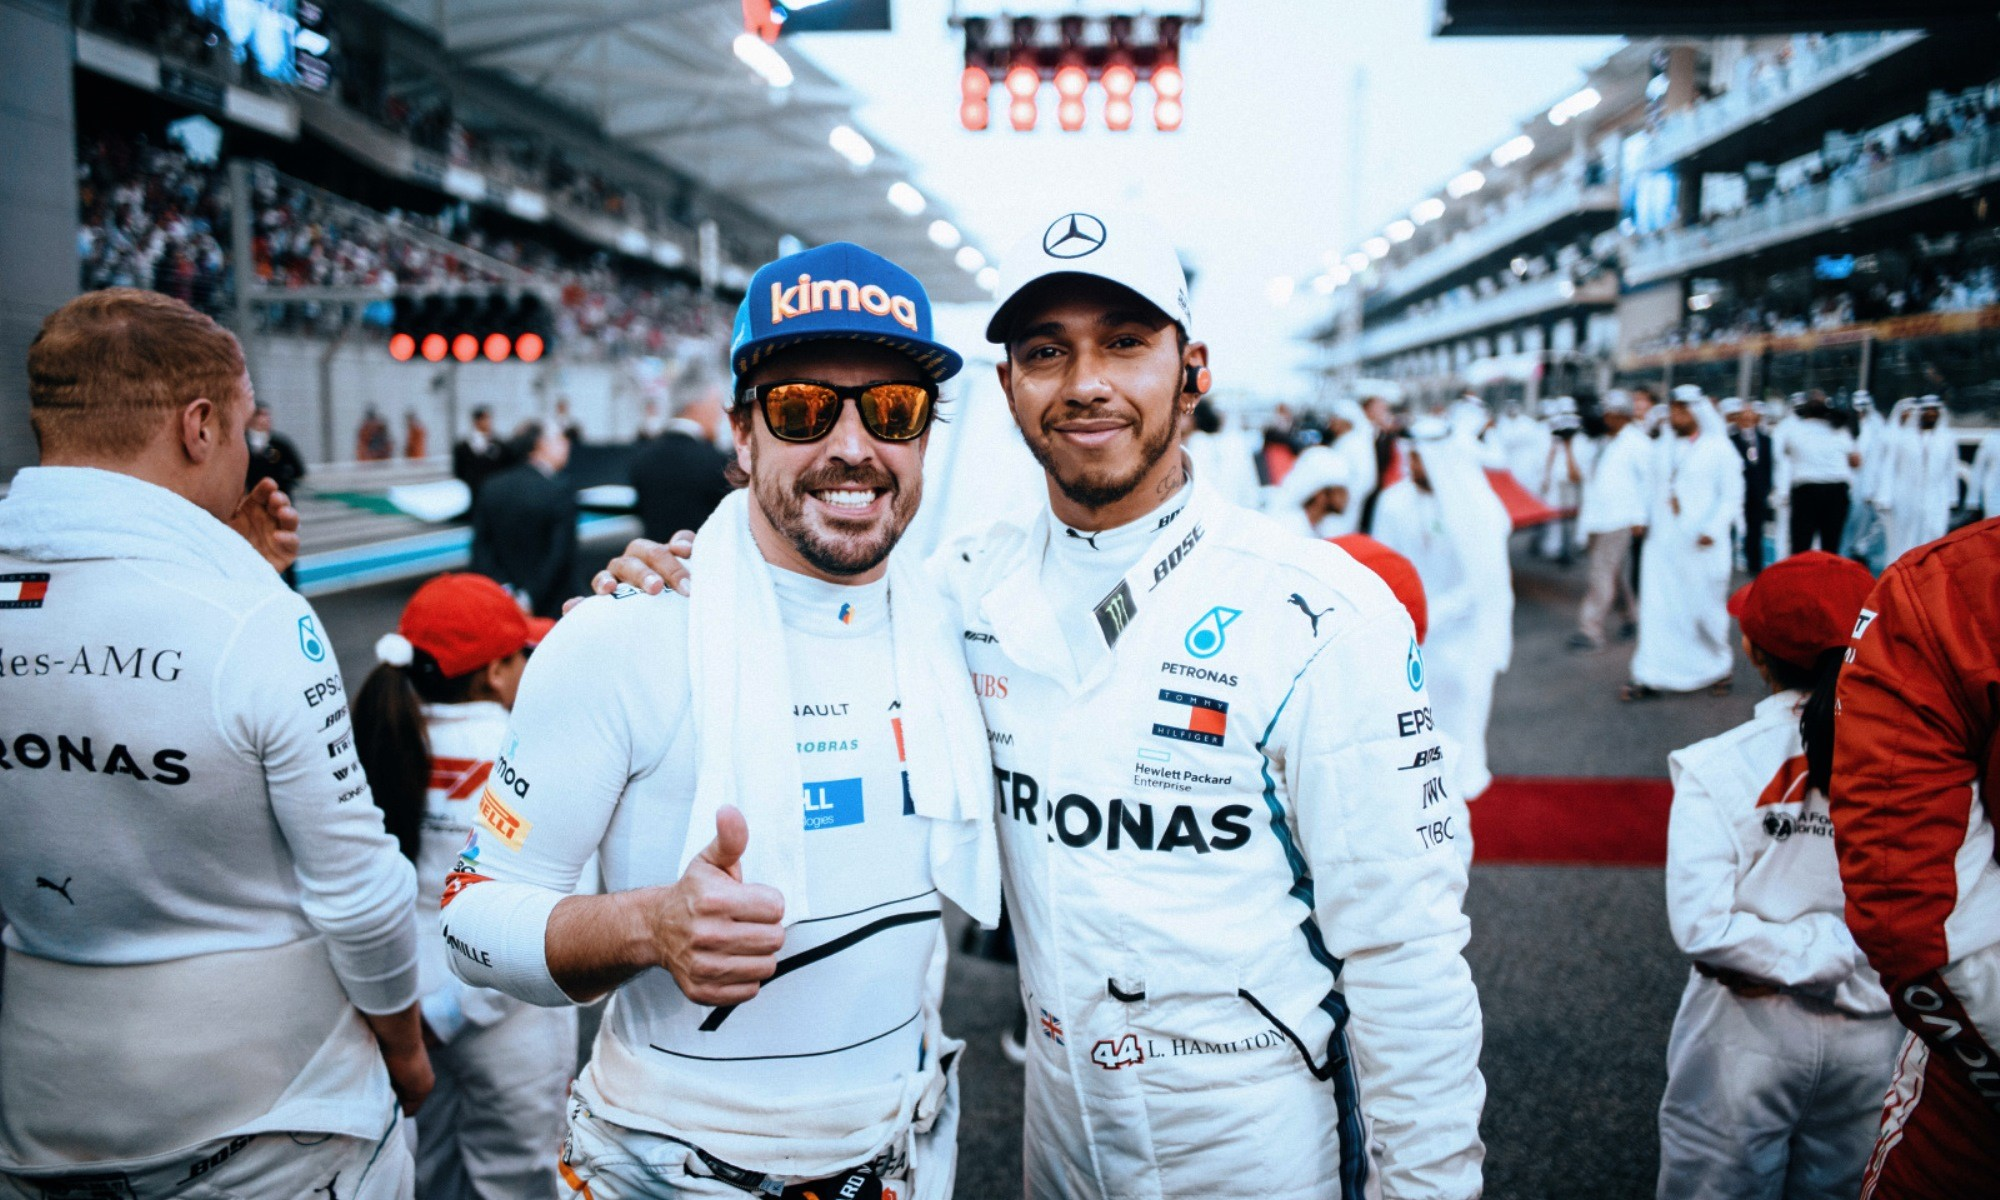 Fernando Alonso had his final F1 race in Abu Dhabi